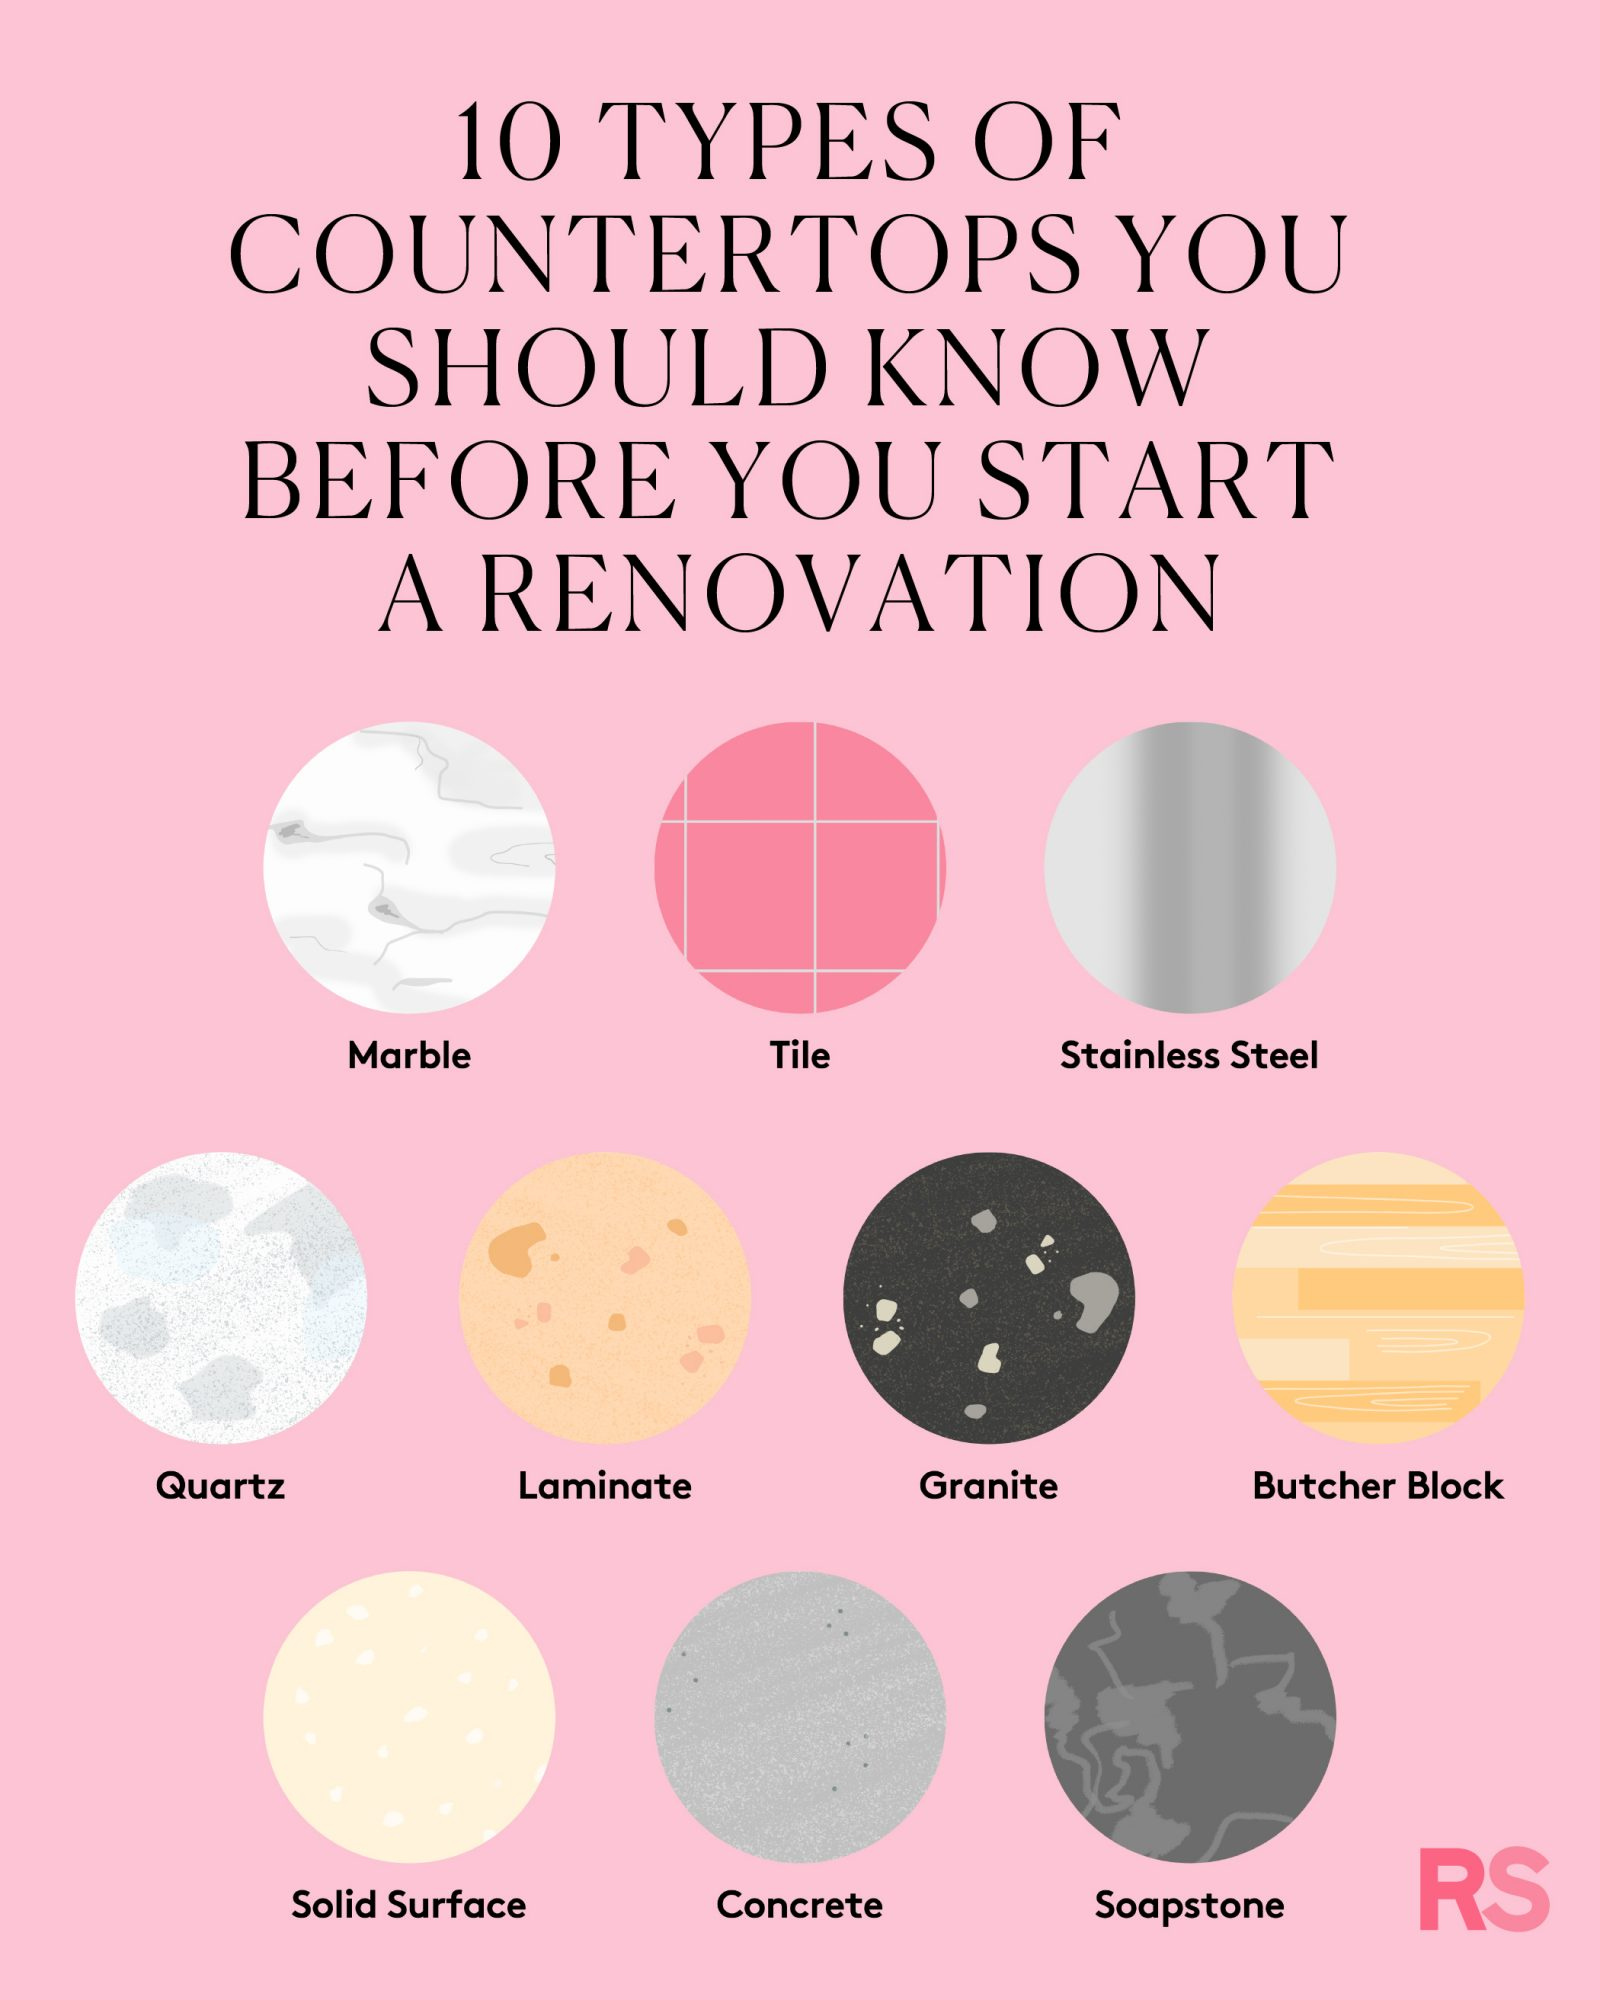 10 Types Of Countertops You Should Consider For Your Next Kitchen Or Bathroom Remodel Real Simple